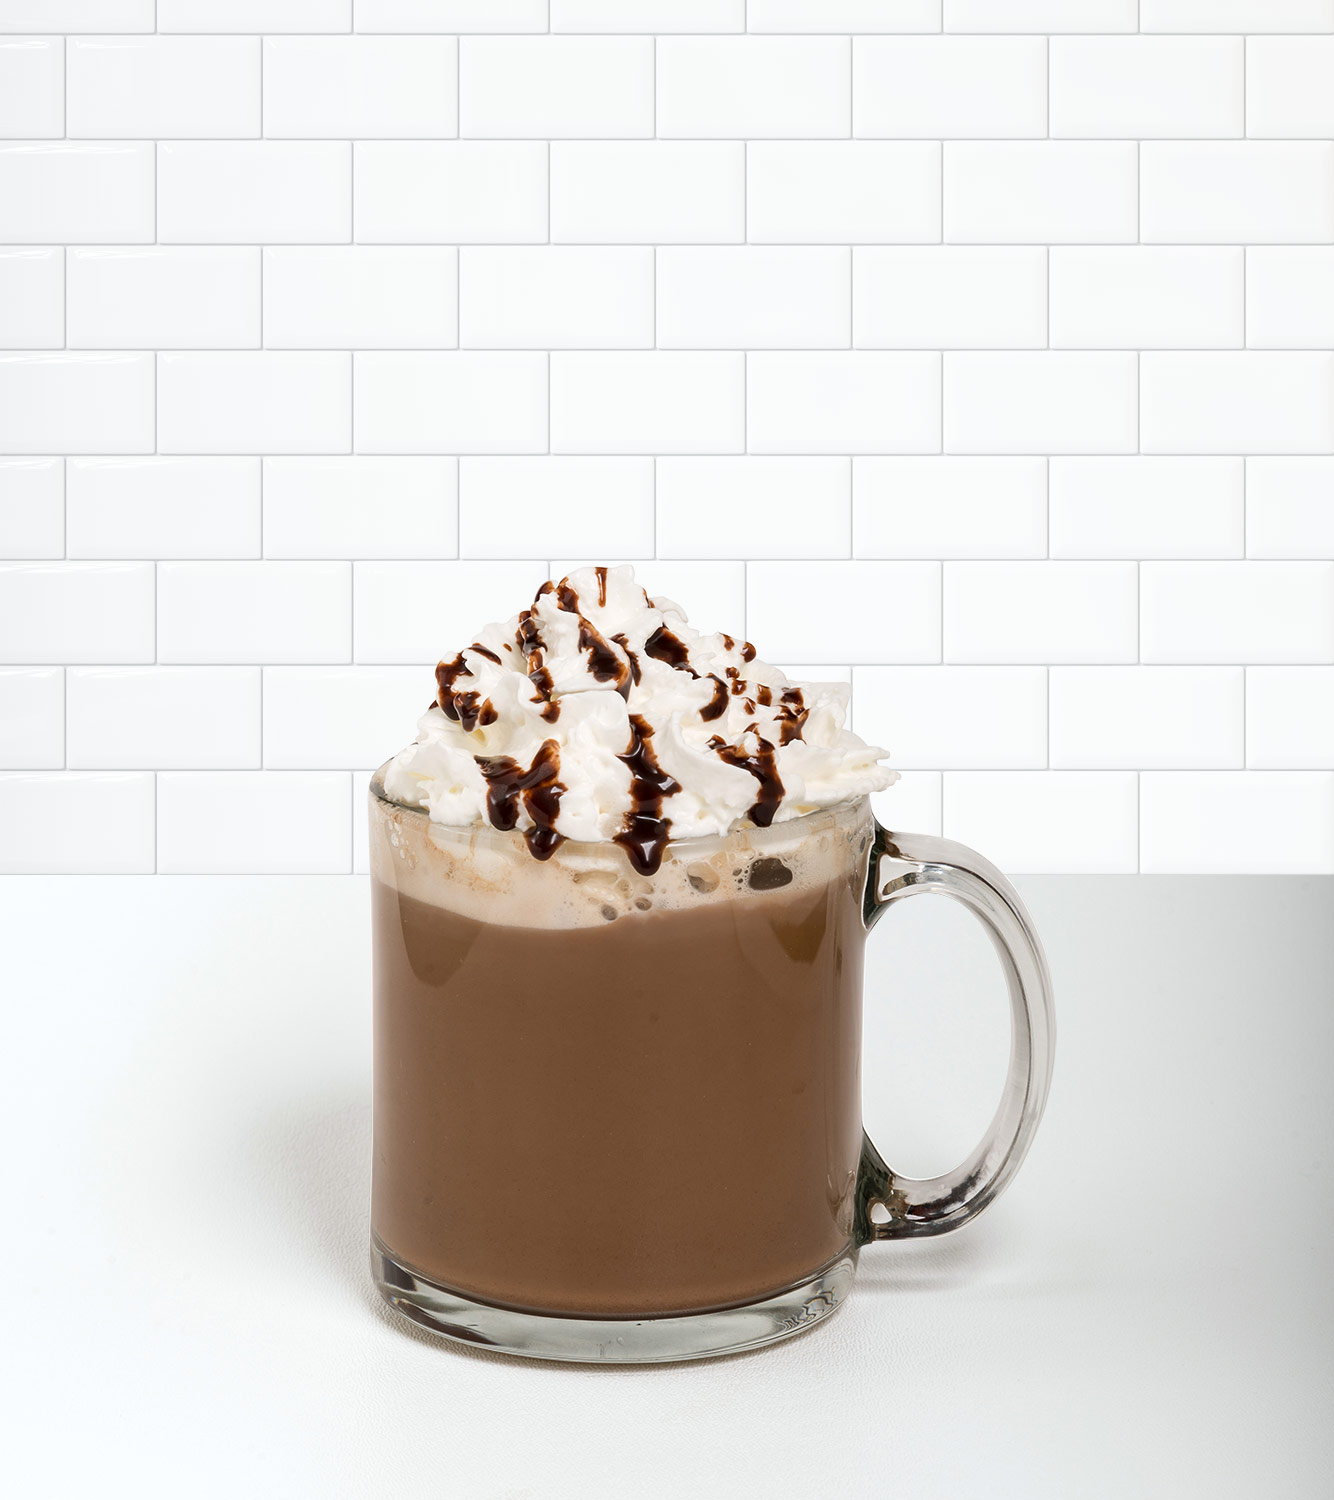 Hot Mocha in a beverage container